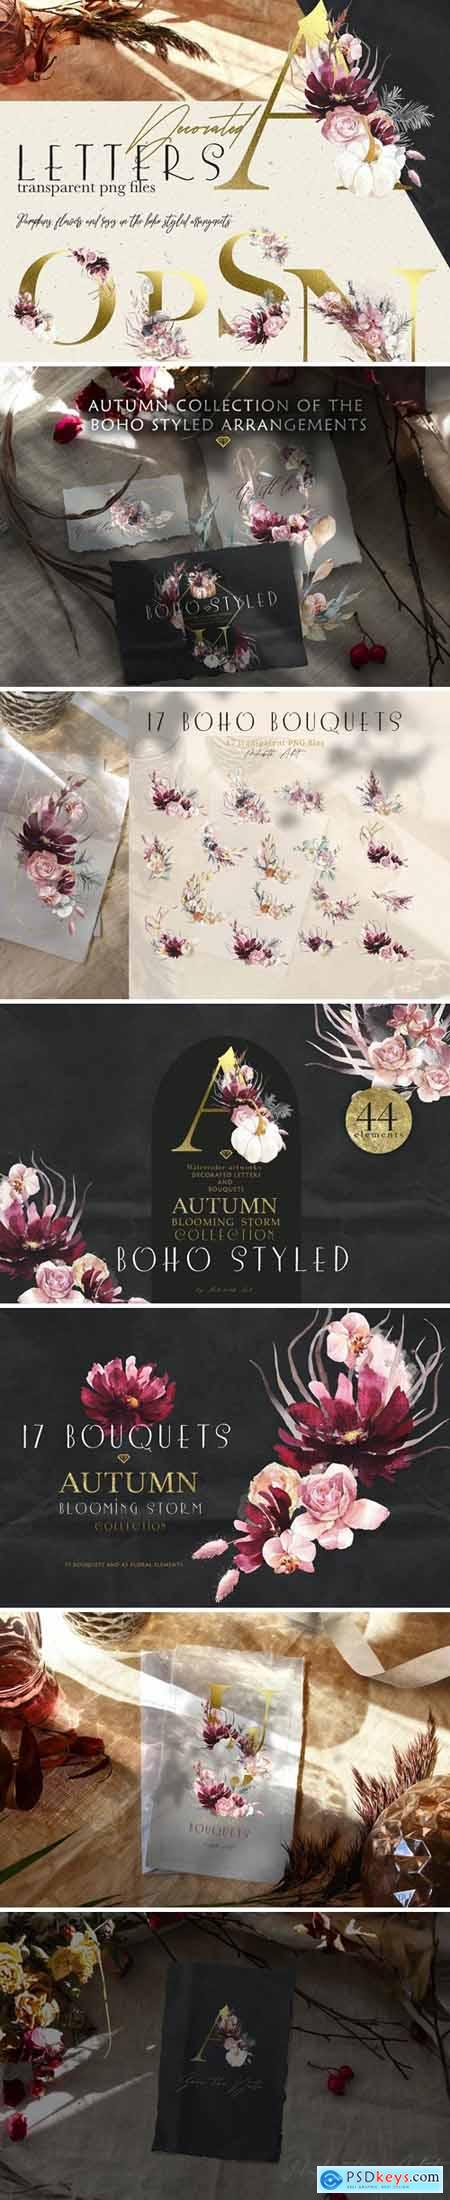 The autumn blooming storm Bouquets and 5511466